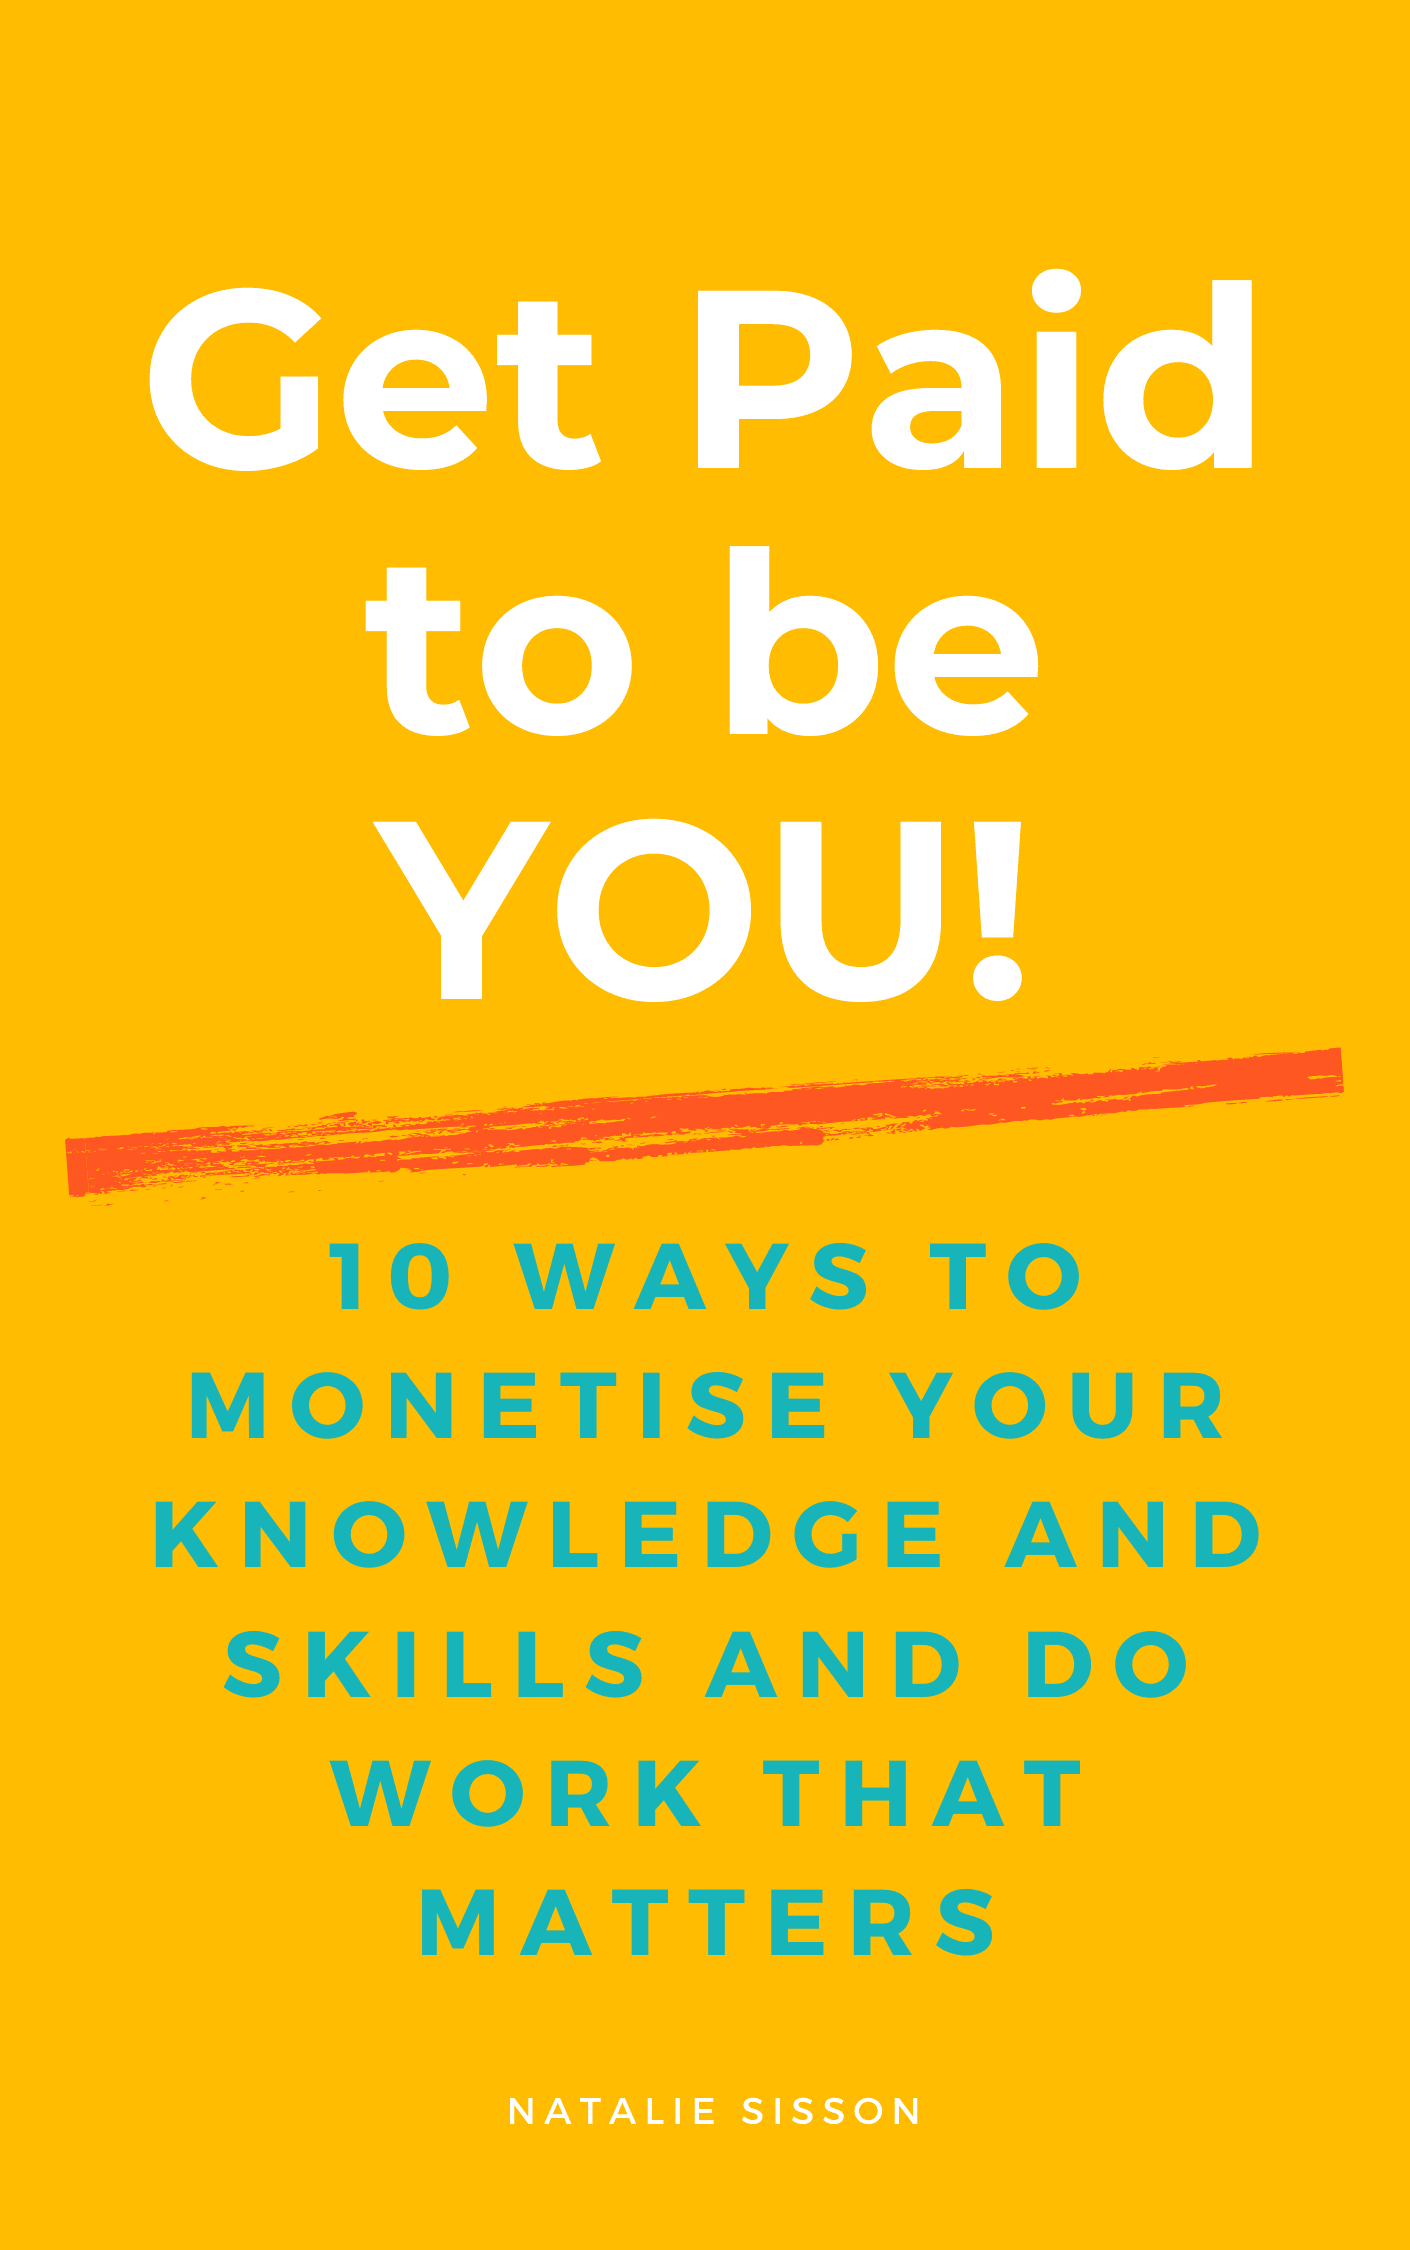 Get Paid to Be You and Monetise Your Skills and Knowledge